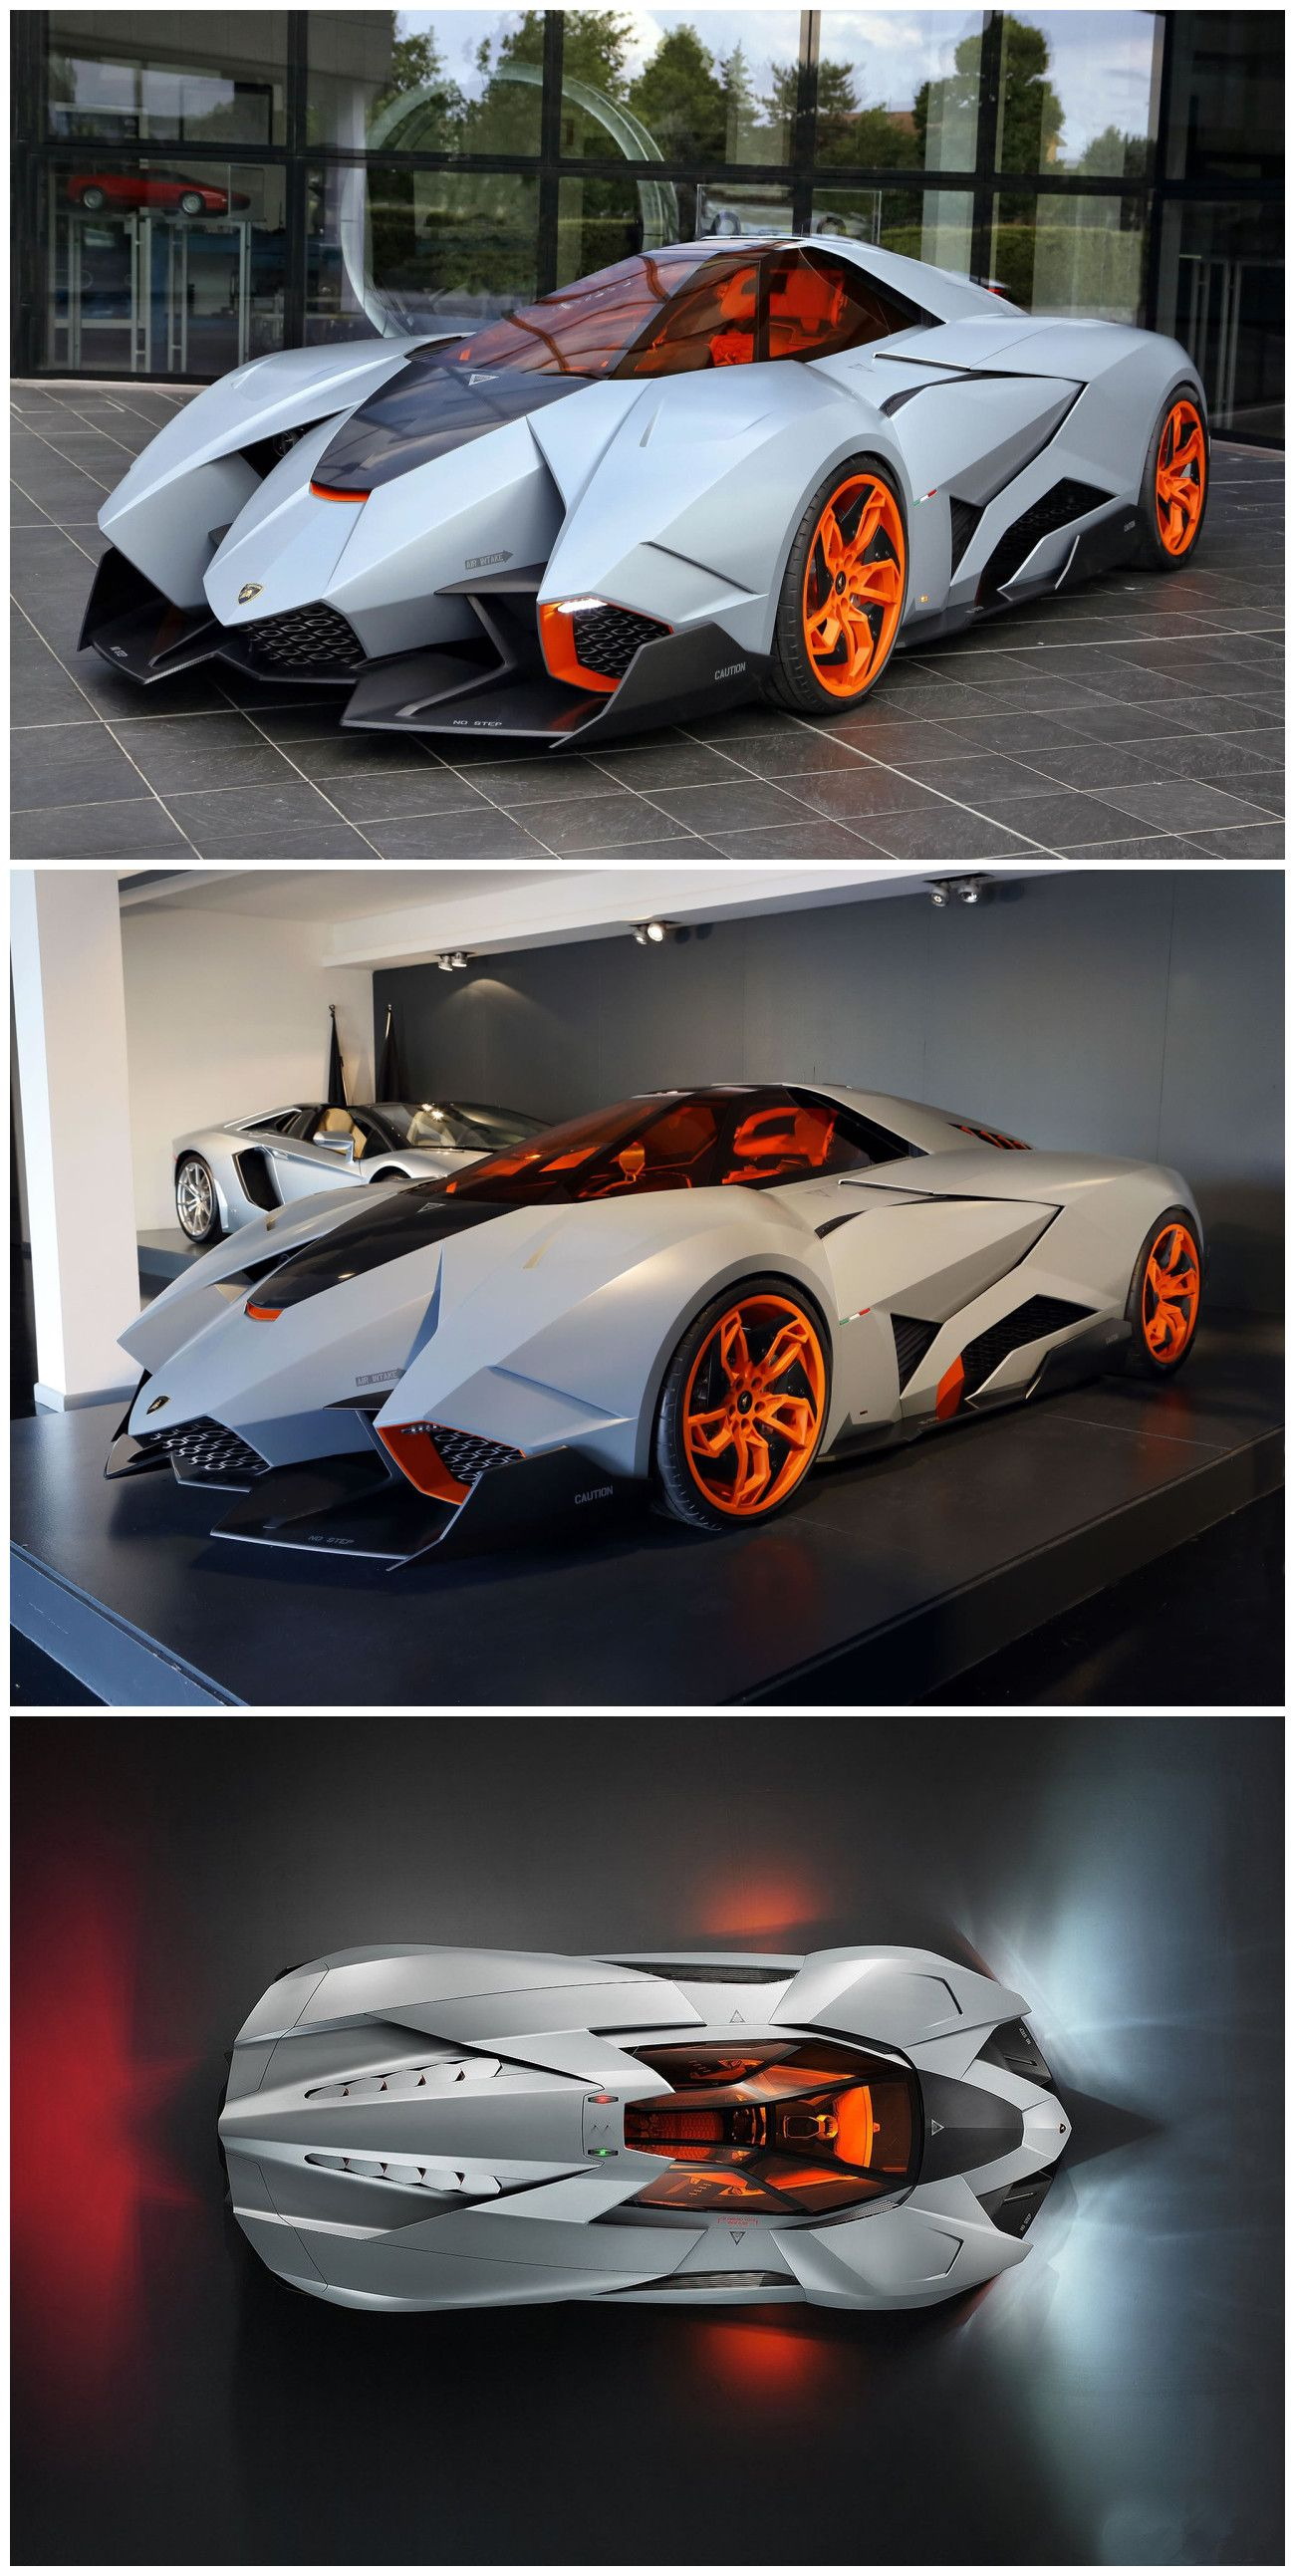 Lamborghini Egoista Price Tag Wallpaper Official Lamborghini Egoista Image  | Cars | Pinterest | Lamborghini, Car Wallpapers And Luxury Cars